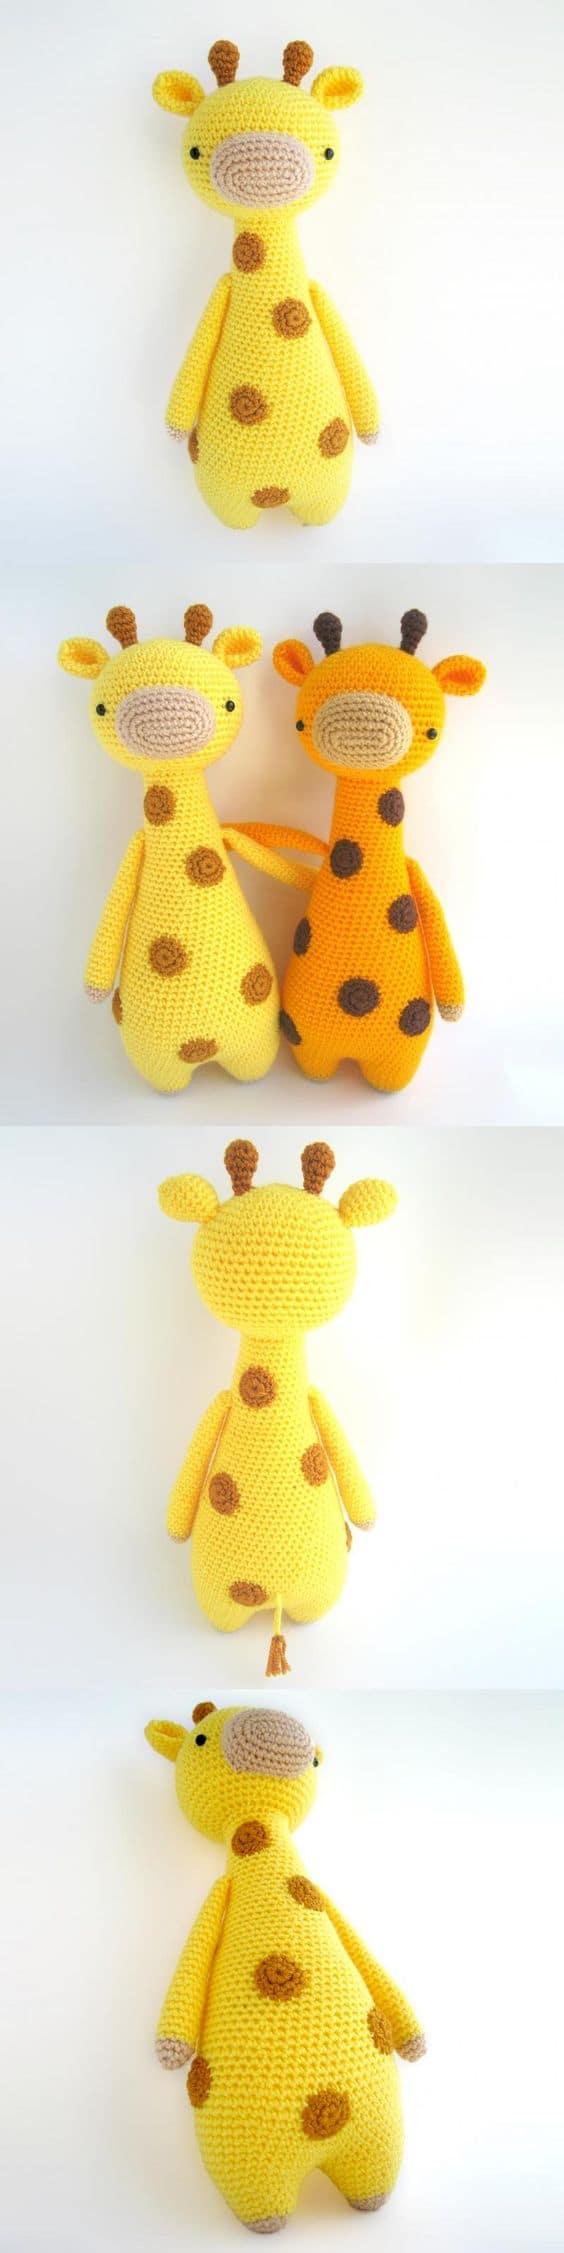 Adorable Crochet Giraffe Patterns - The Cutest Ideas | The WHOot